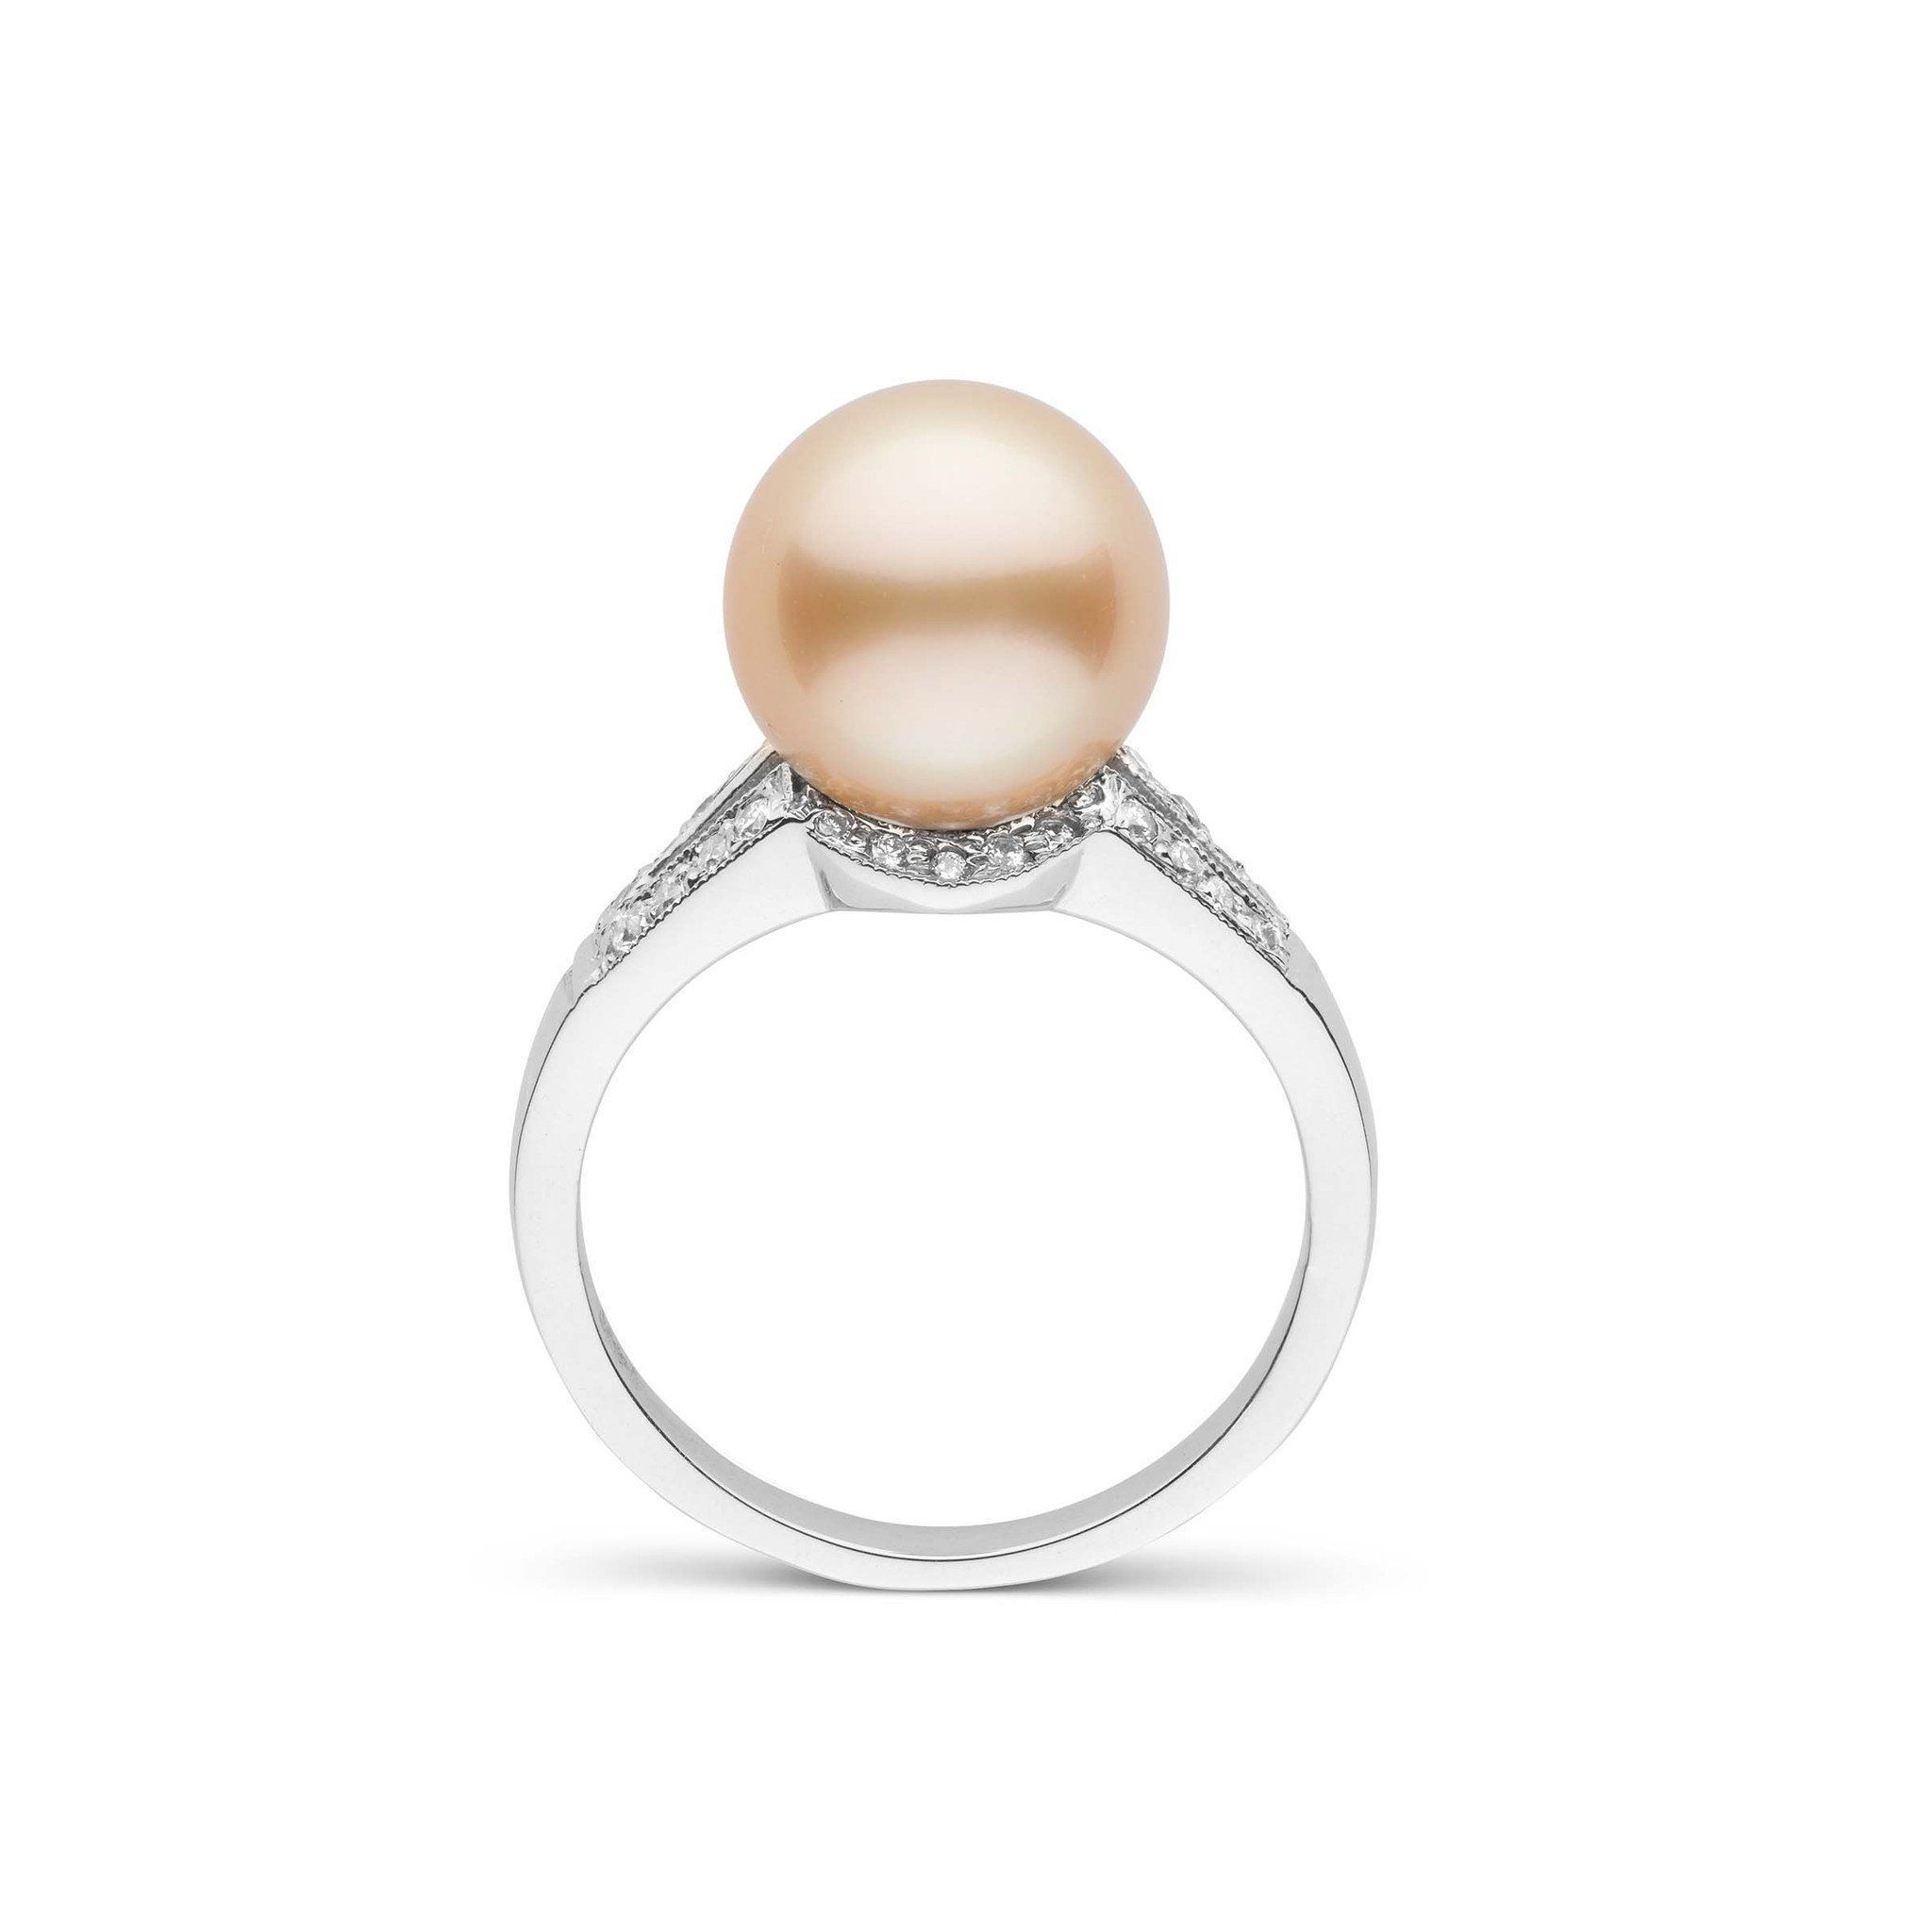 Vixen Collection Golden South Sea Pearl Ring 18K